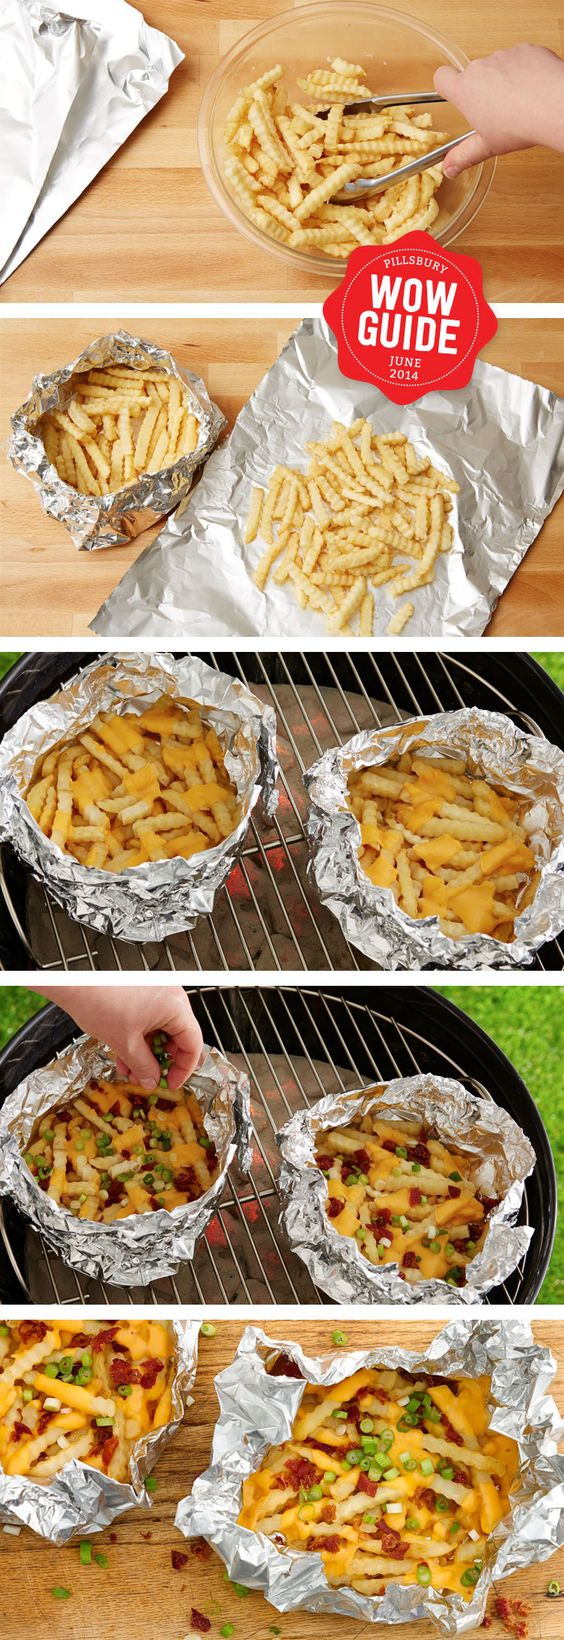 Cheesy delicious french fries made in a foil pack on the grill - pinterest: @xpiink ♚